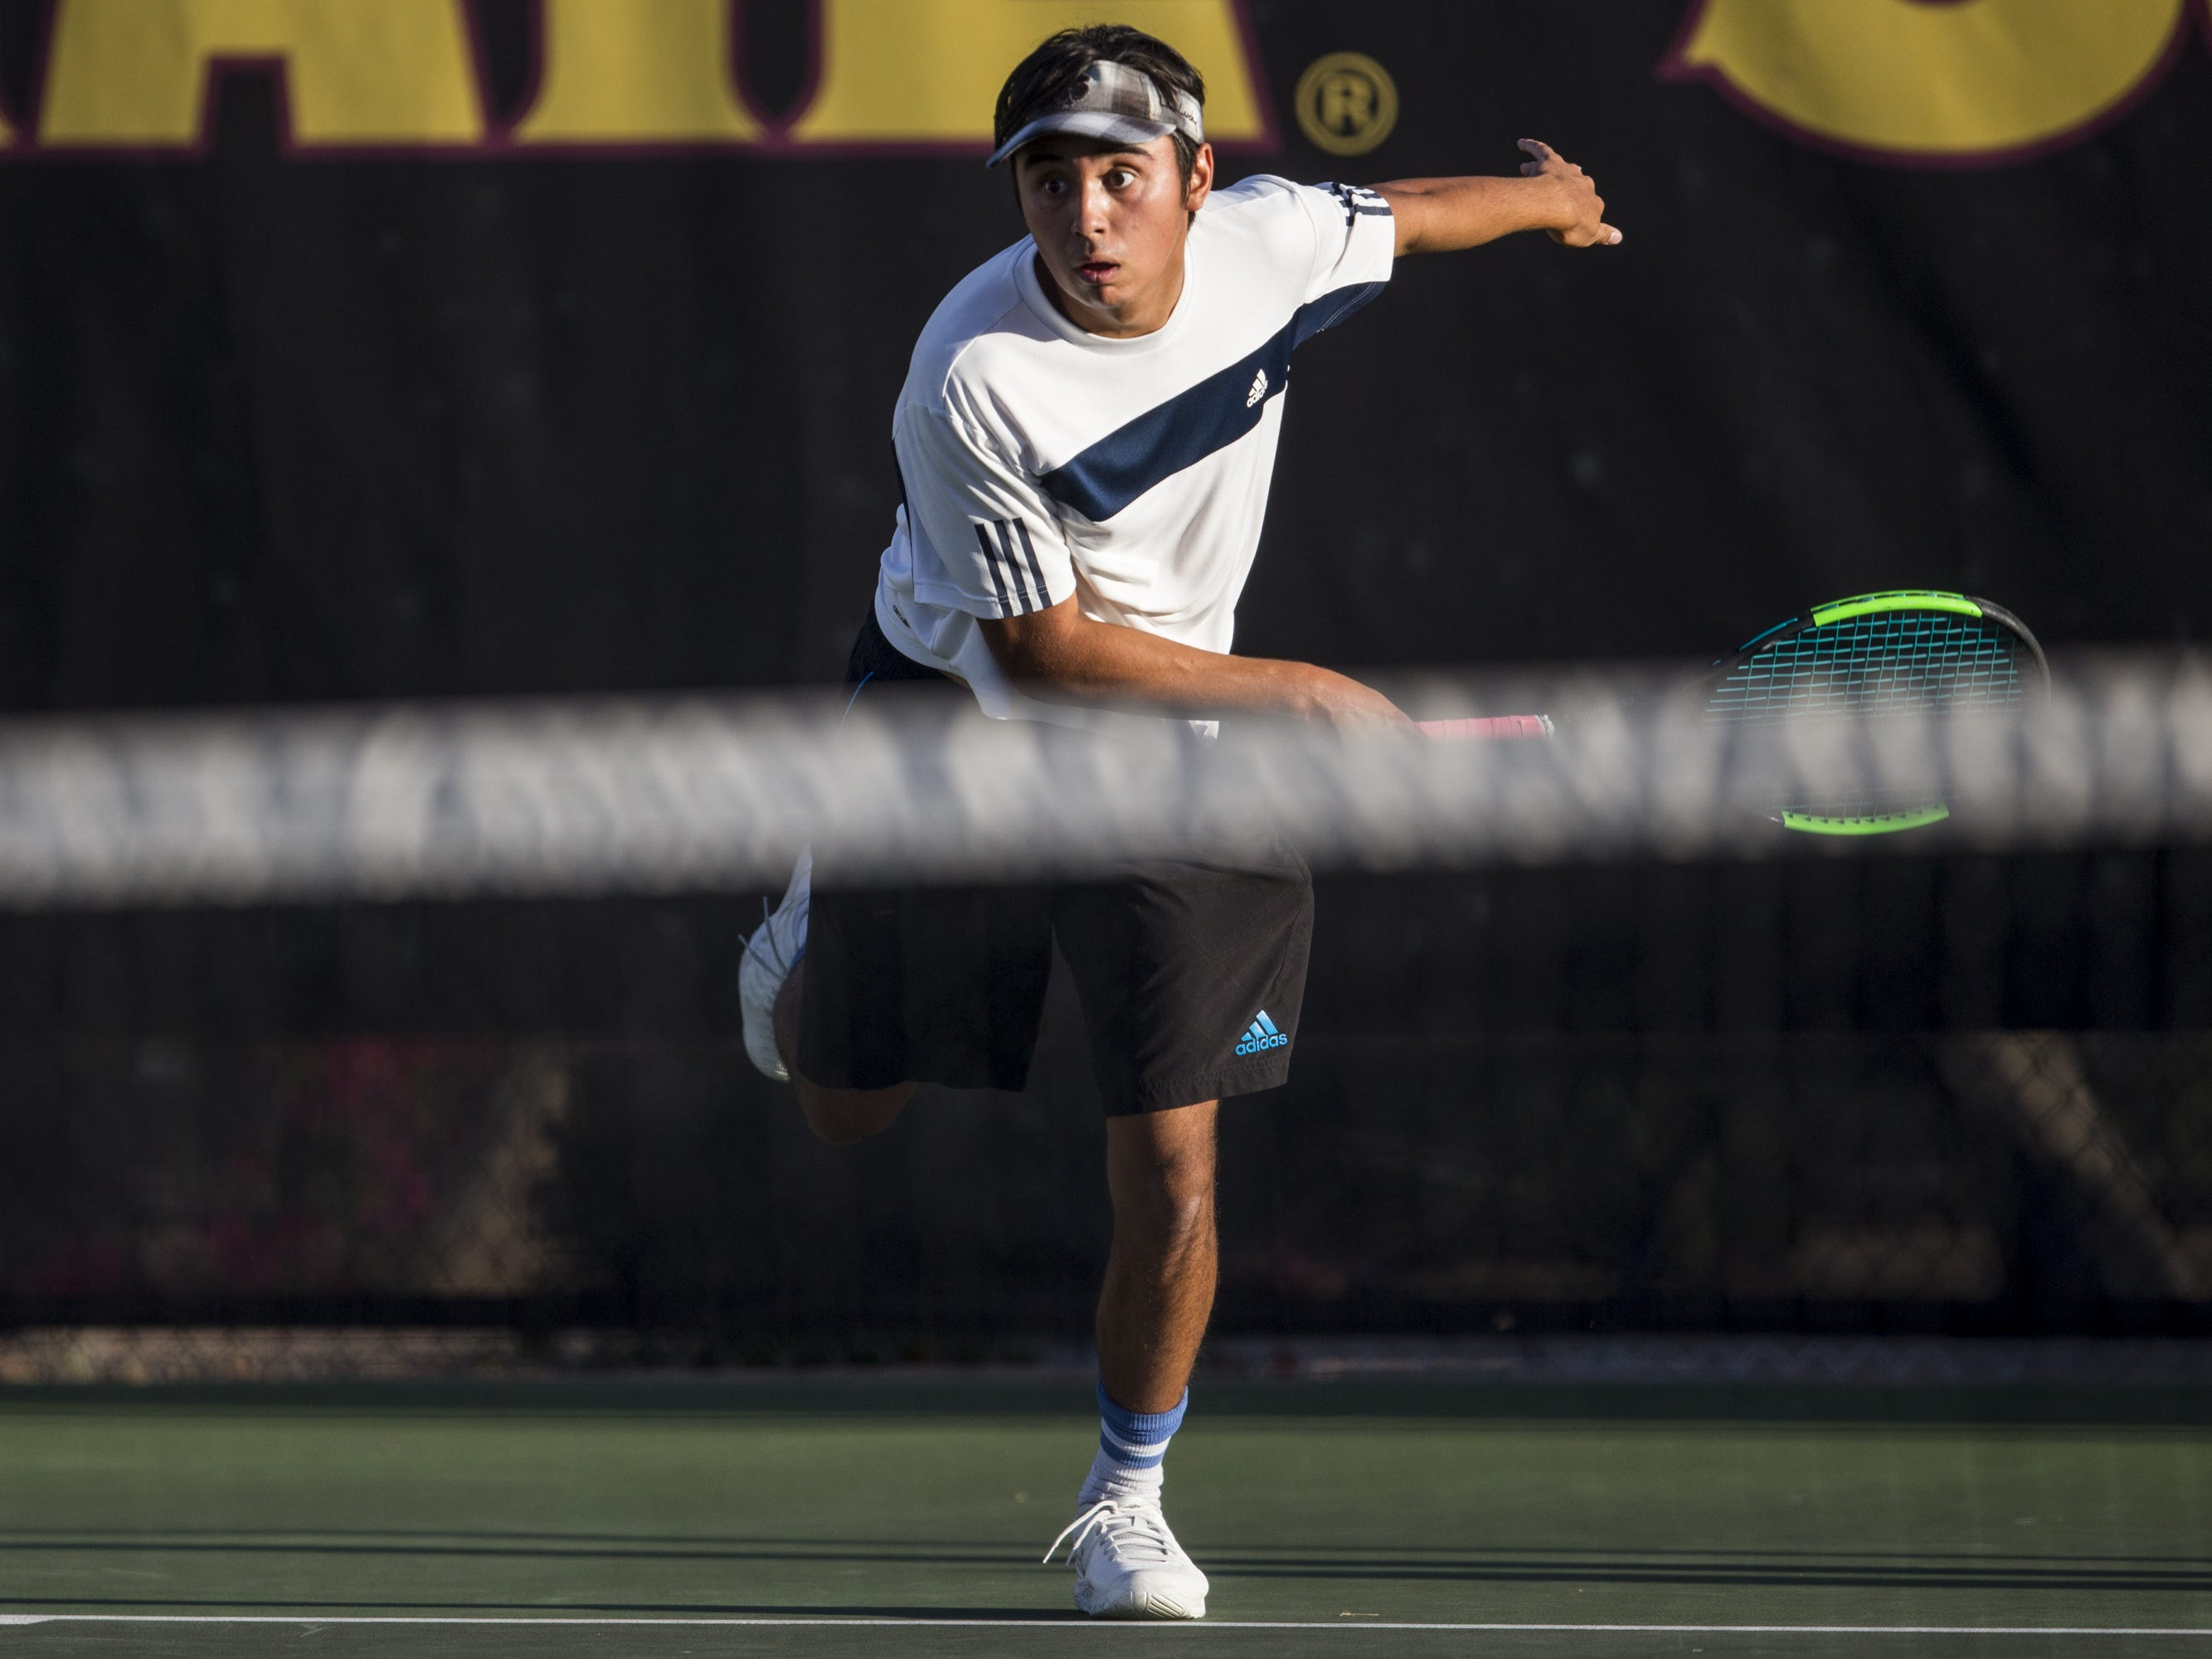 Cactus Shadows' Harry Carrozza returns the ball against Catalina Foothills during the Division II Boys Tennis Doubles State Championship on Monday, April 29, 2019, at Whiteman Tennis Center in Tempe, Ariz.